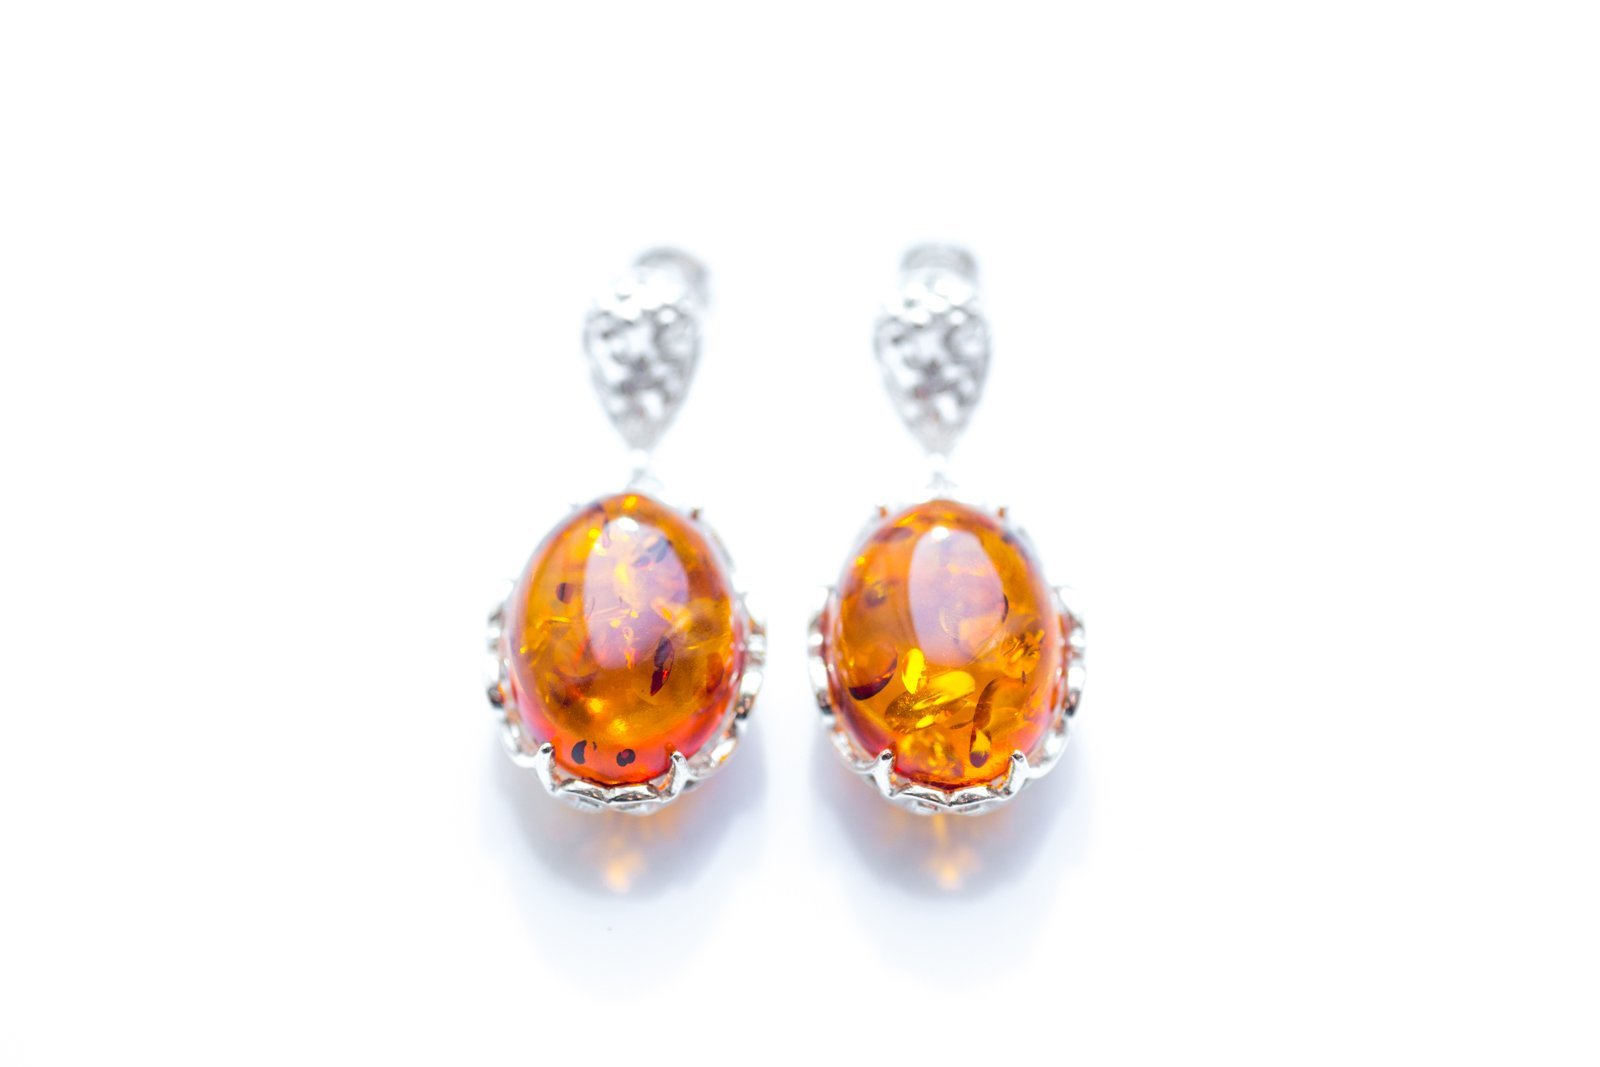 Baltic Beauty Earrings Golden Amber Decorative Earrings